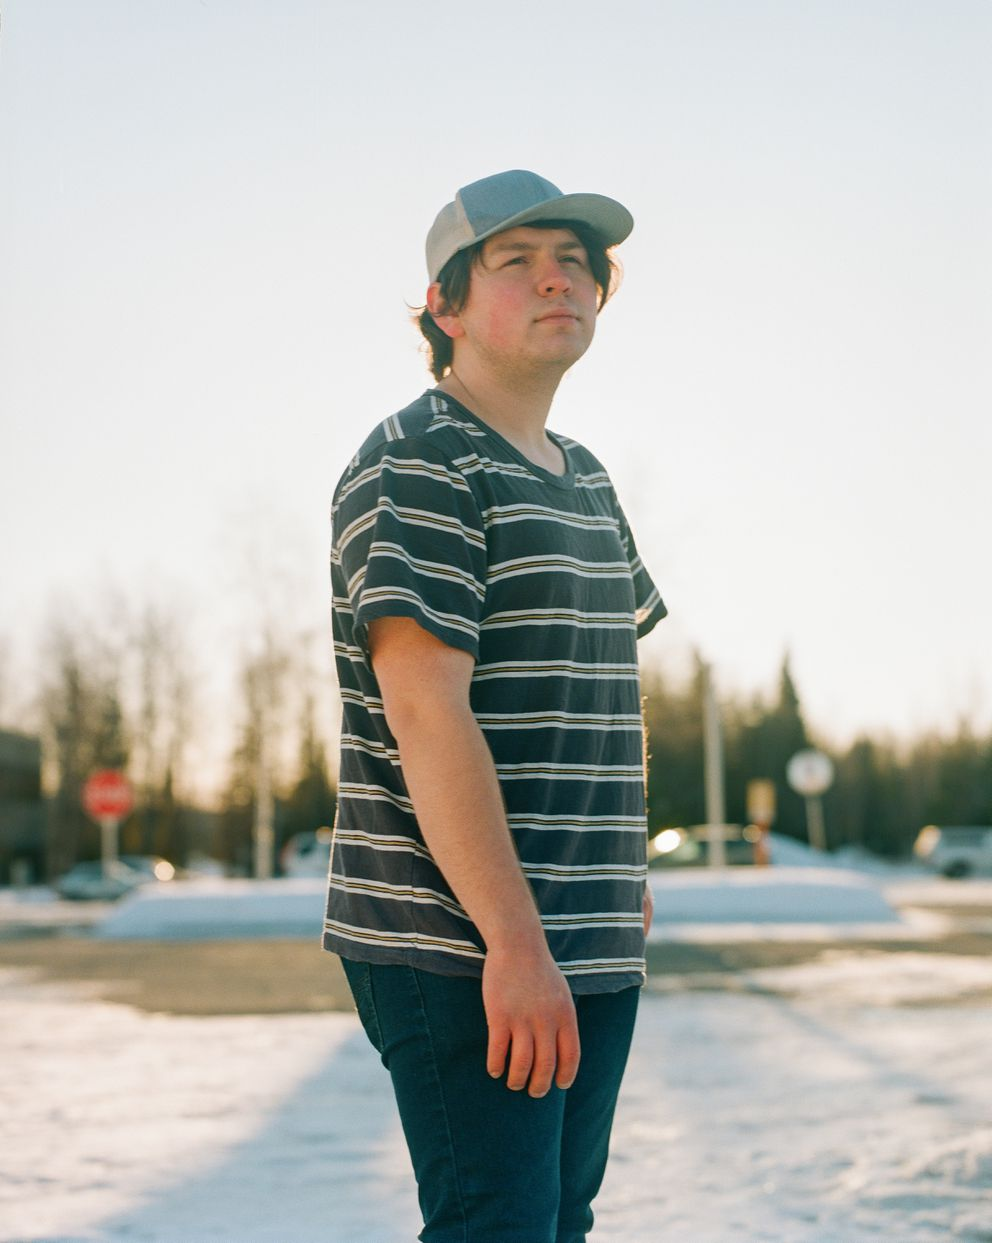 Mateo Jaime, 19, on the campus of the University of Alaska Anchorage, where he attends school, on April 5. He says that he plans to go to medical school after obtaining his undergraduate degree. (Ash Adams for The Marshall Project and NPR)